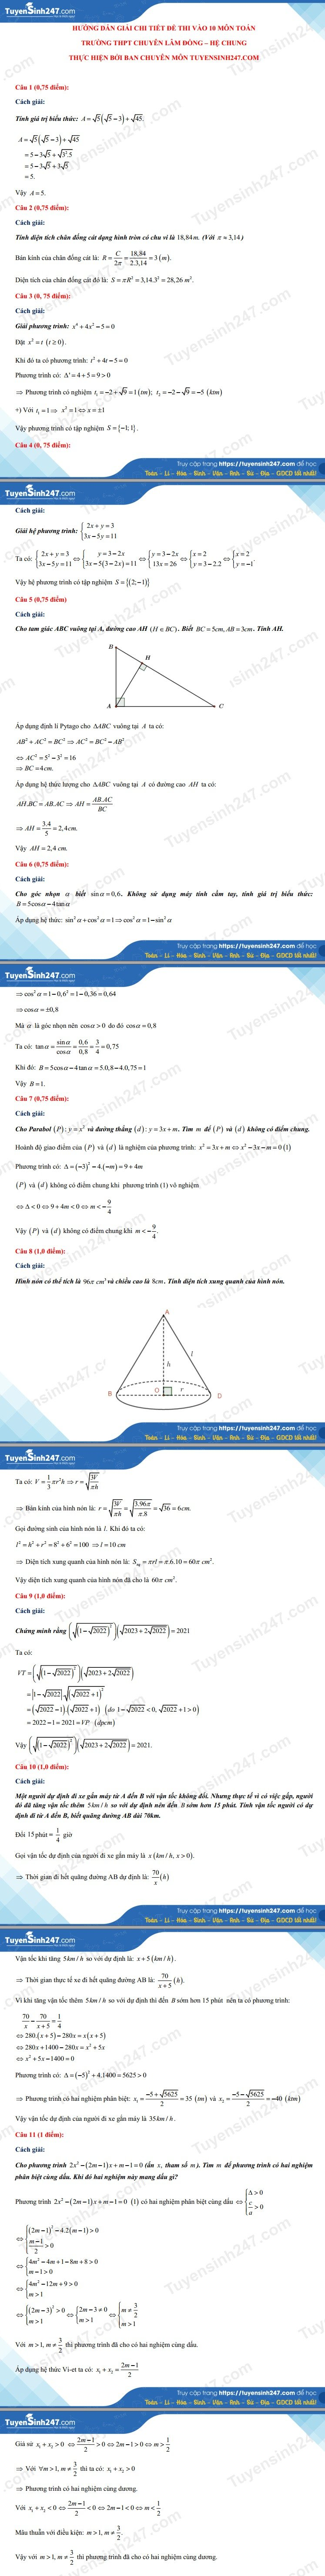 Answers to the 10th grade math exam in Lam Dong province in 2021 2